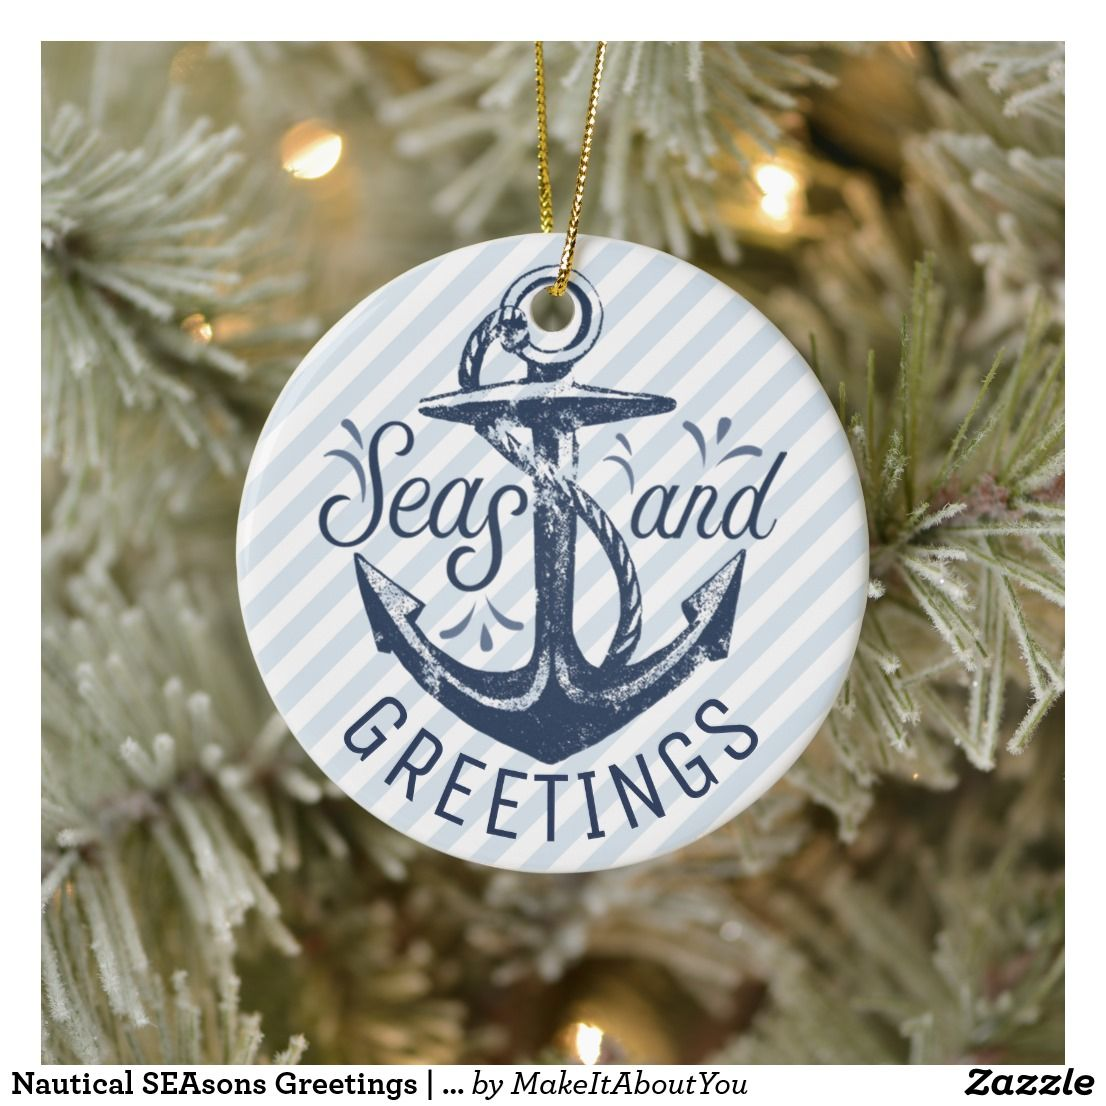 Nautical SEAsons Greetings | Blue and White Photo Ceramic ...